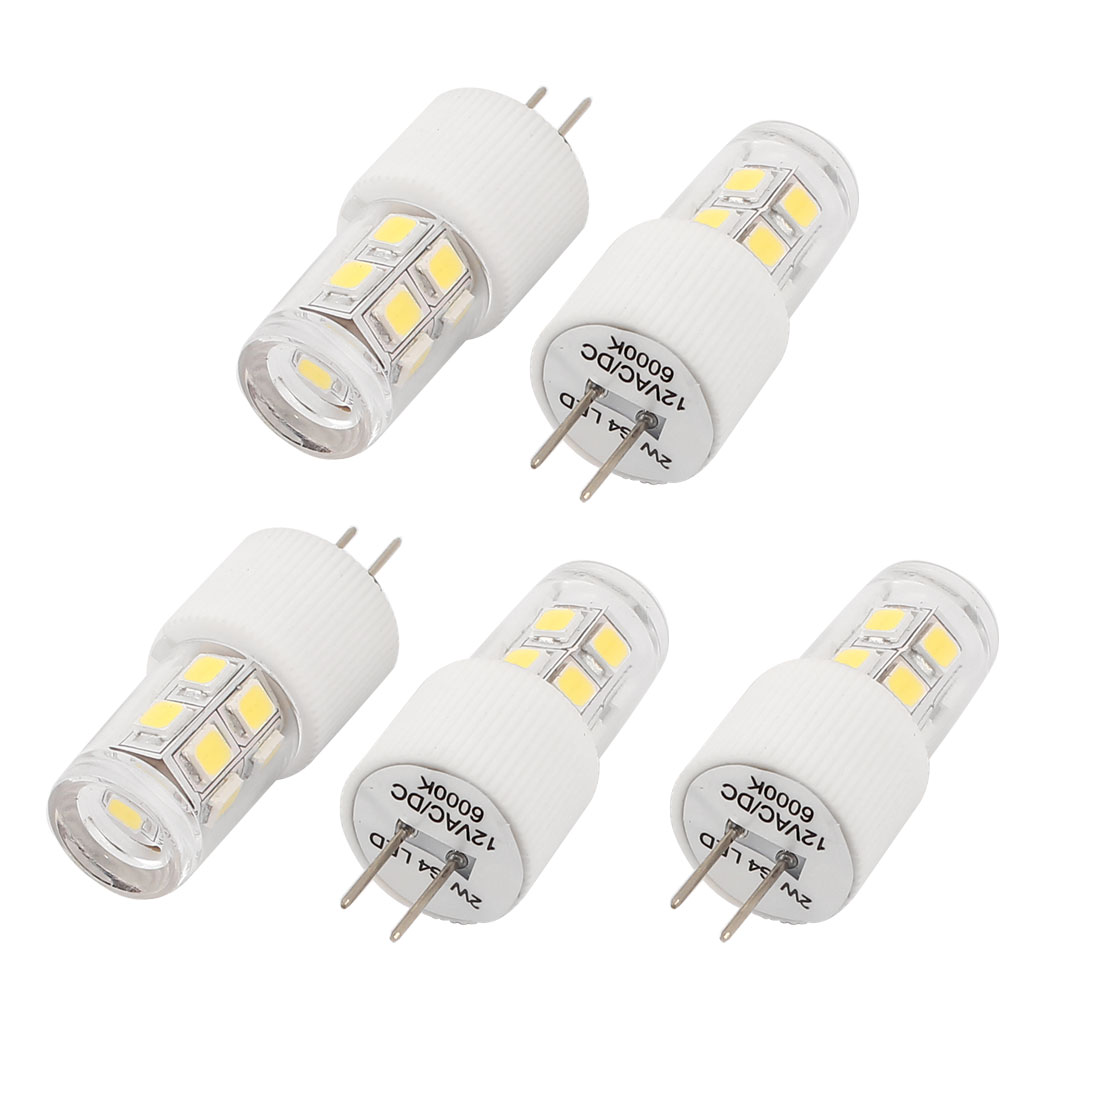 5 Pcs 240-260LM Energy Saving G4 2W 13 2835 LED Bulb Lamp Light White